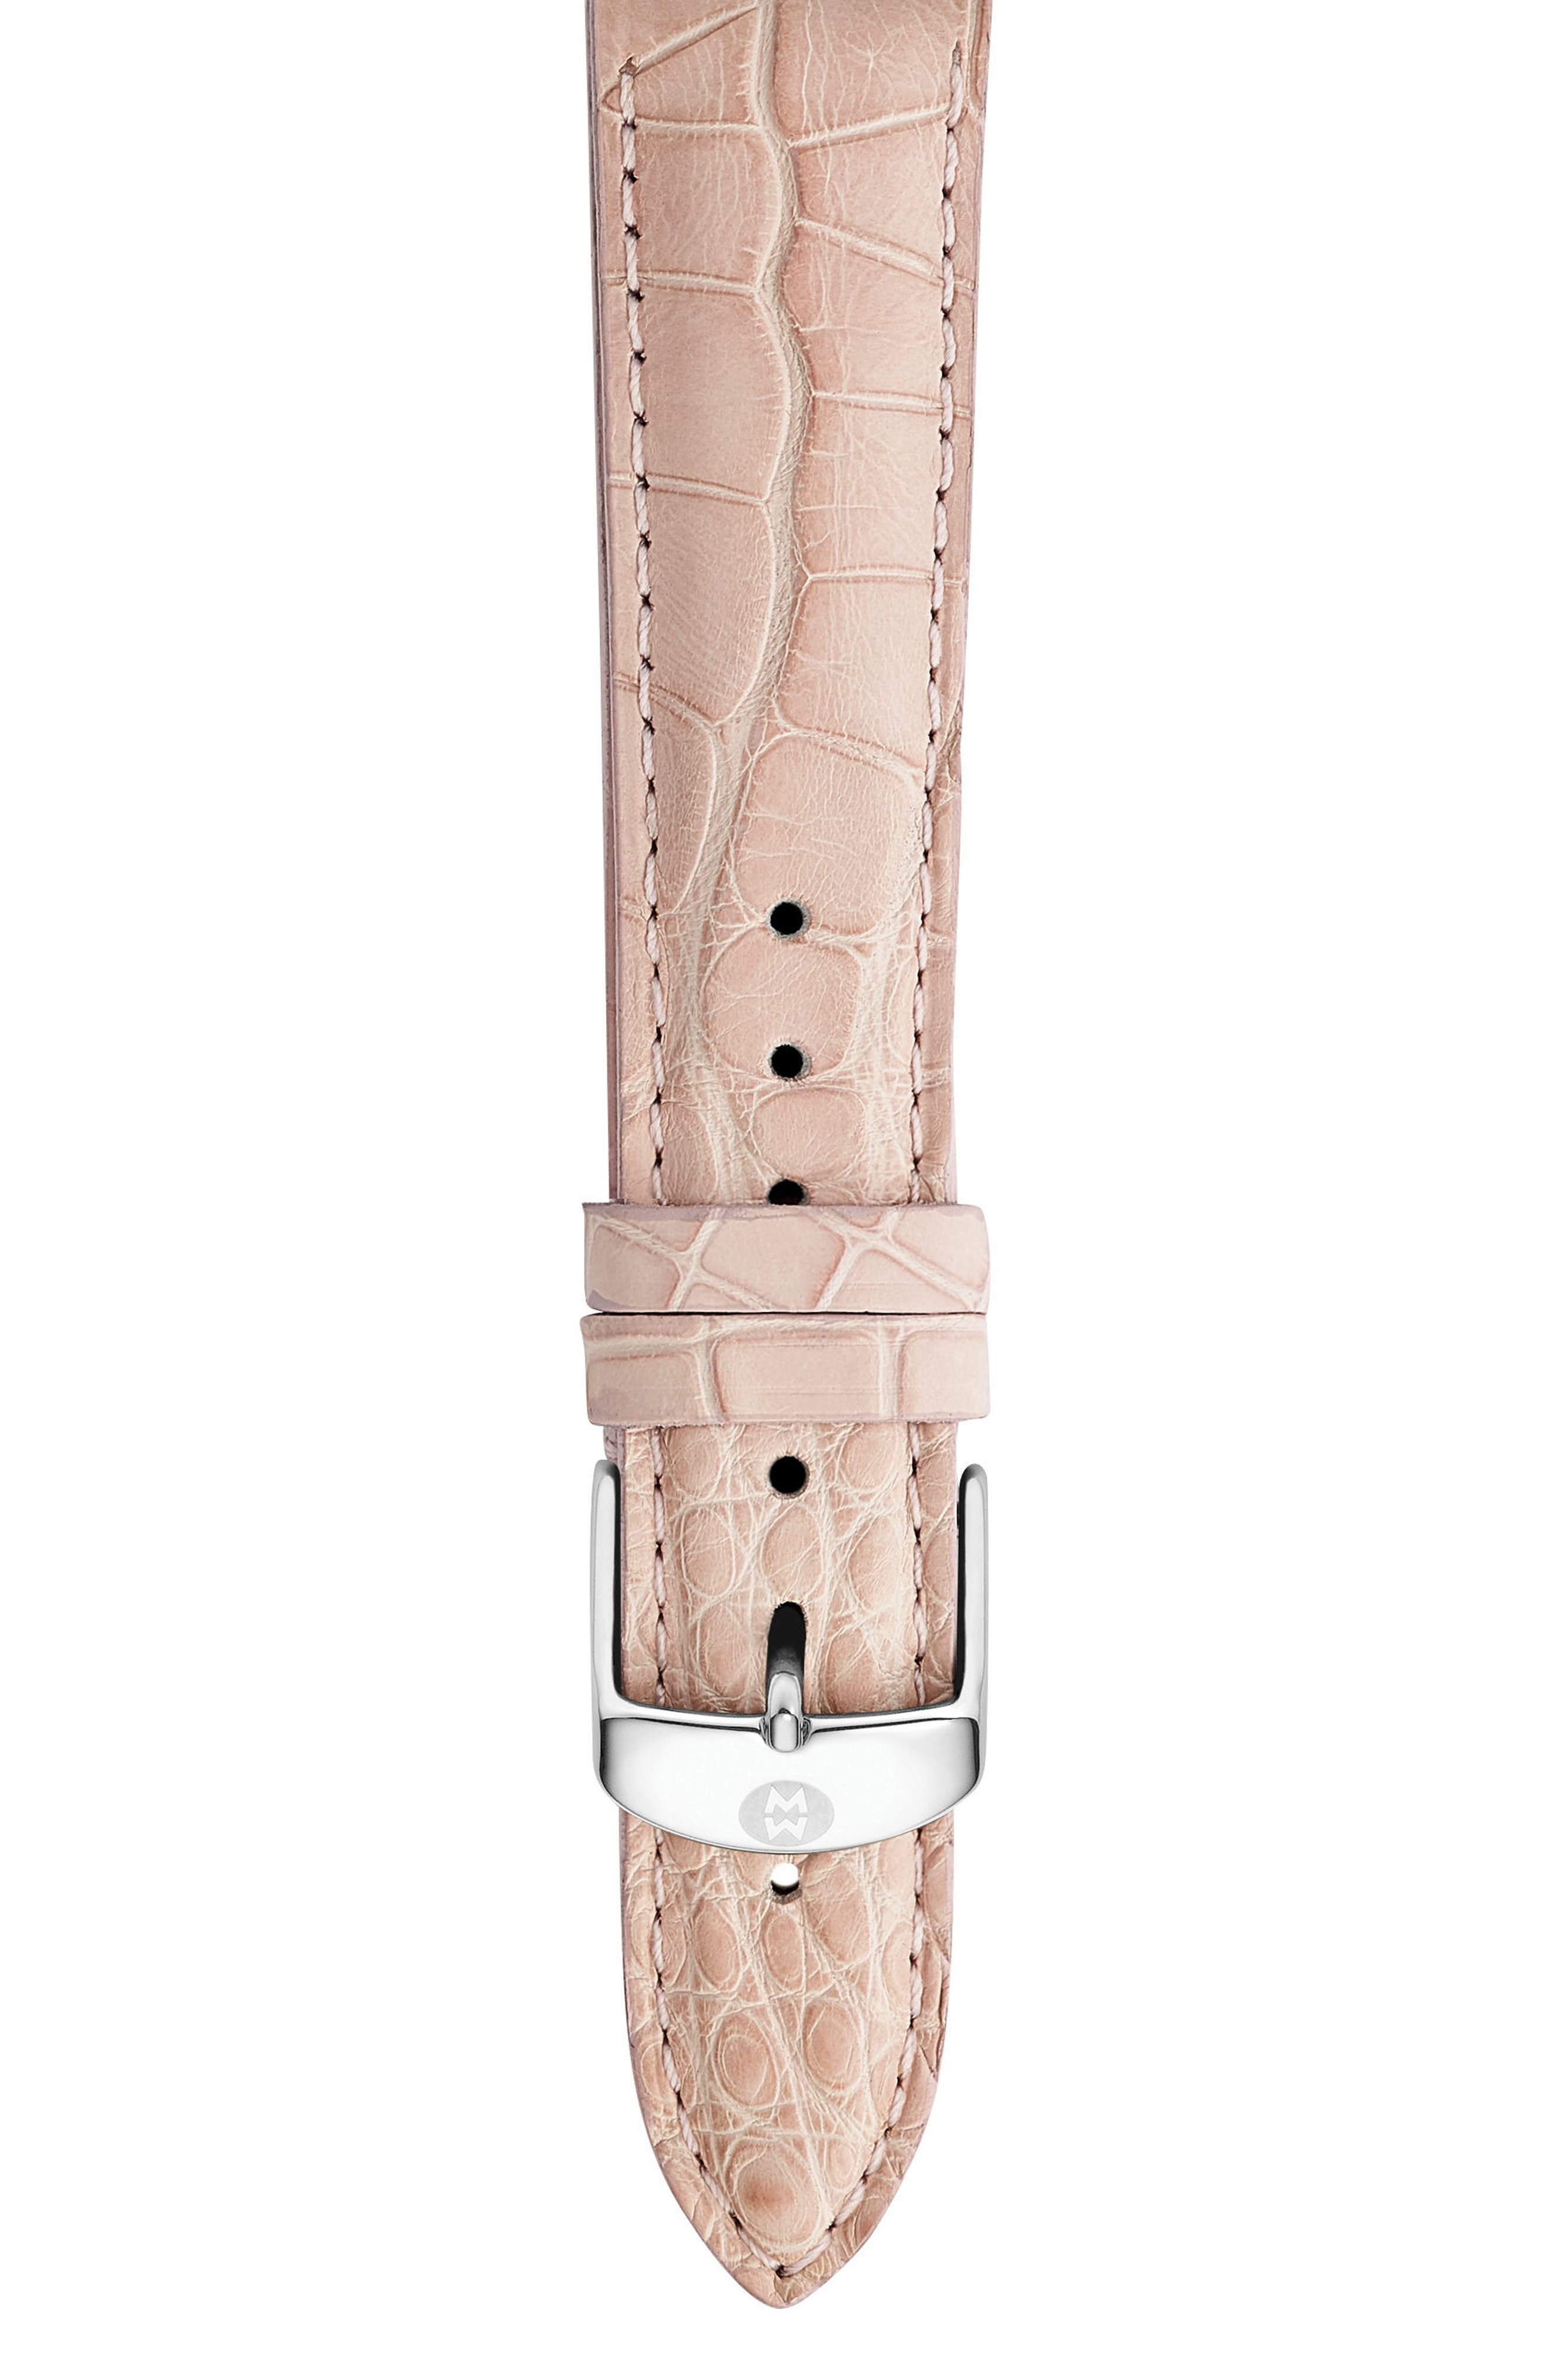 18mm Alligator Watch Strap,                             Main thumbnail 1, color,                             Blush Pink